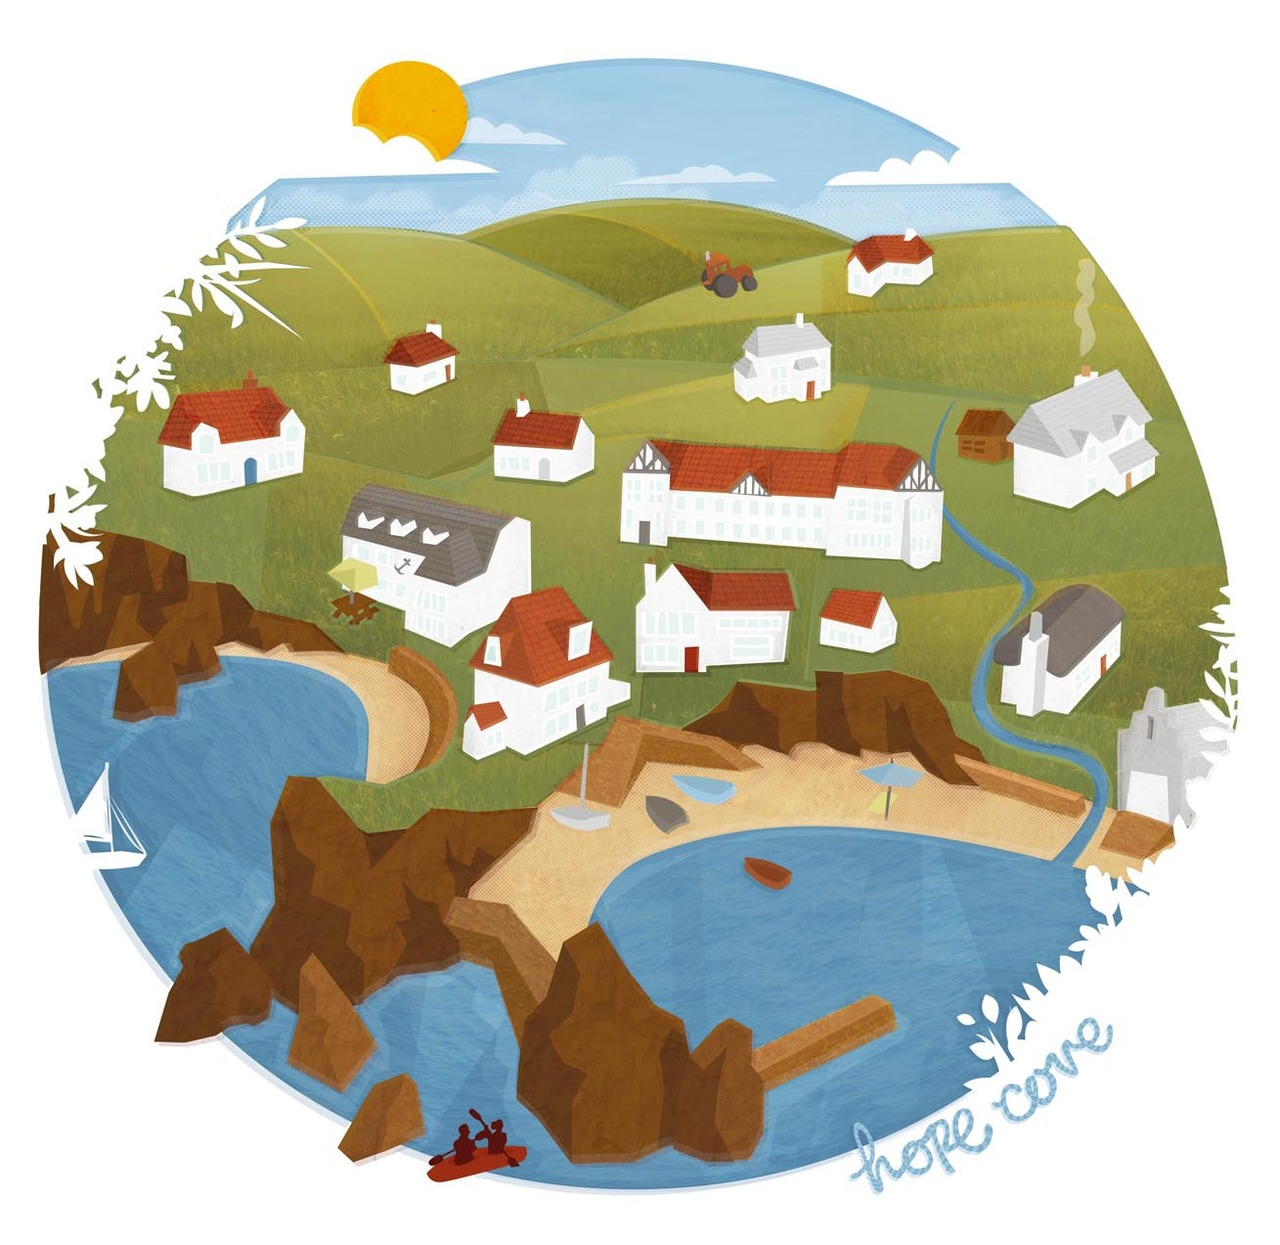 Hope Cove - I was recently commissioned to produce an illustration of a small seaside village in Devon. Using google maps, the internet and a few of my own photographs I have included the key local landmarks, including the client's own house.